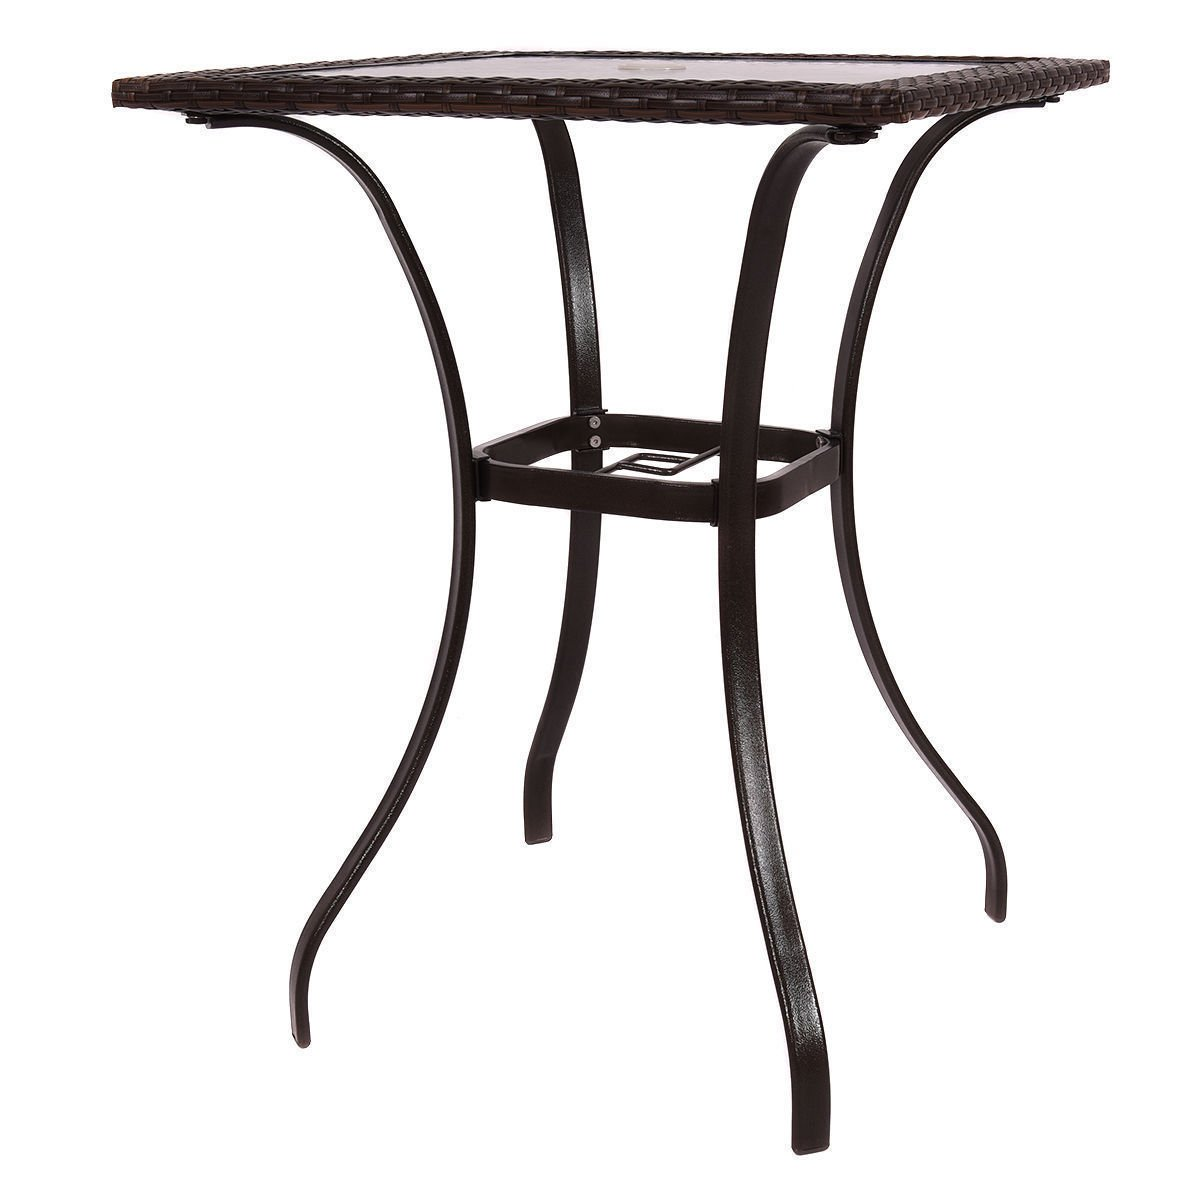 GoodGoods LLC Bar Square Table Glass Modern and Useful Outdoor Patio Rattan Wicker Top Yard Garden Furniture New by GoodGoods LLC (Image #4)